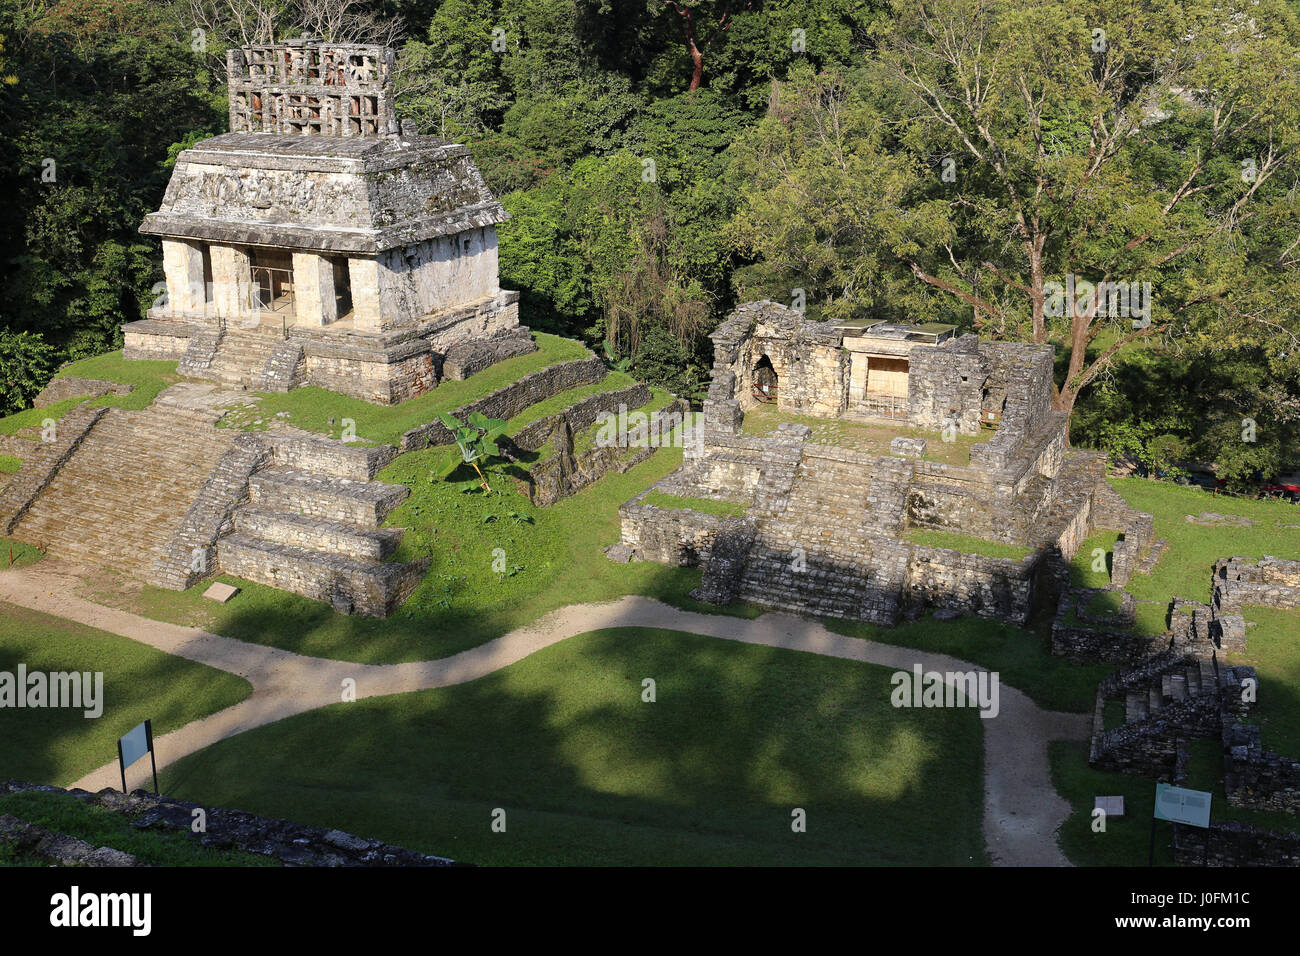 Mayan ruins in Palenque, Chiapas, Mexico. It is one of the best preserved sites, which contains interesting architecture - Stock Image